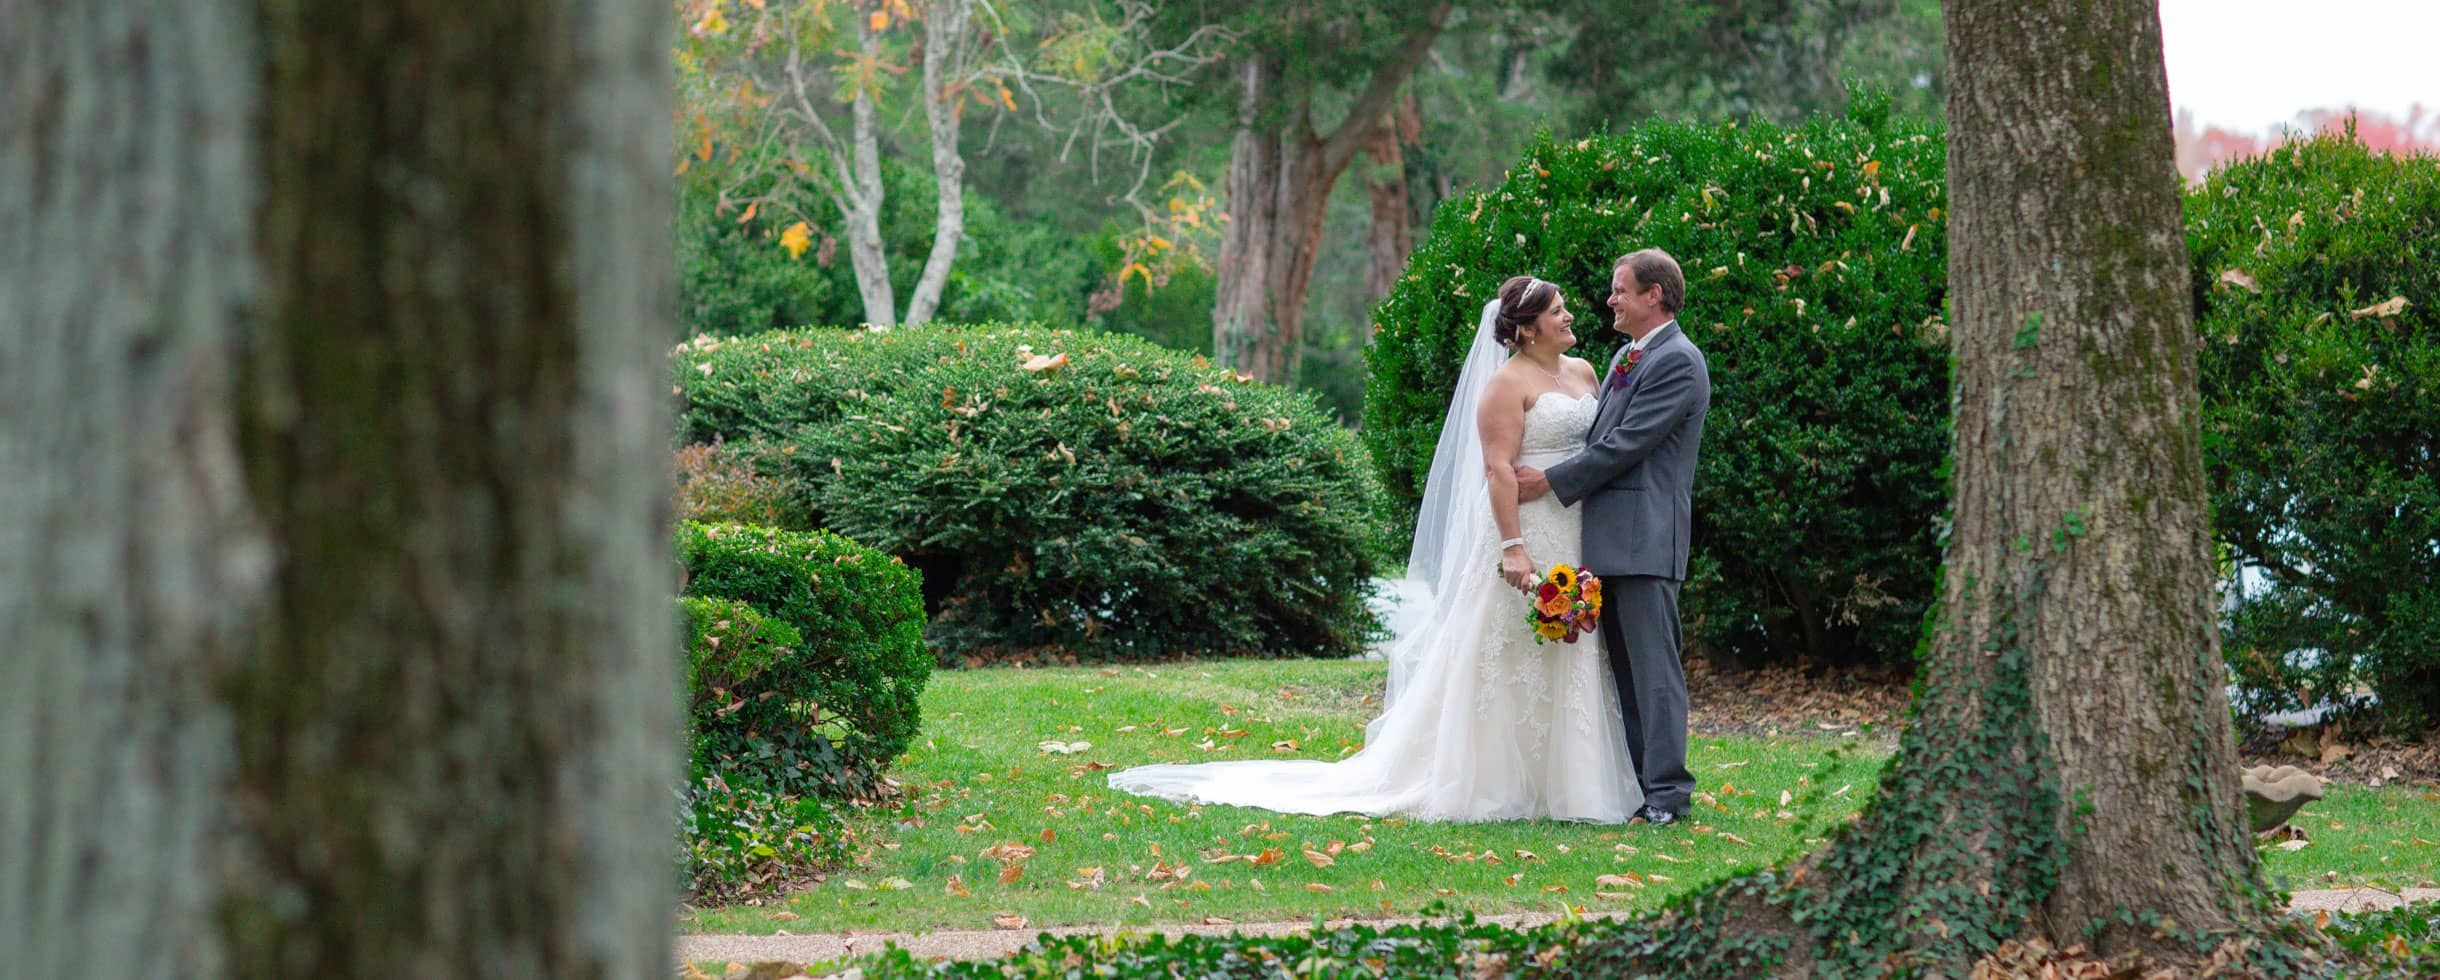 Bride and Groom standing in the Gardens at Prospect Hill